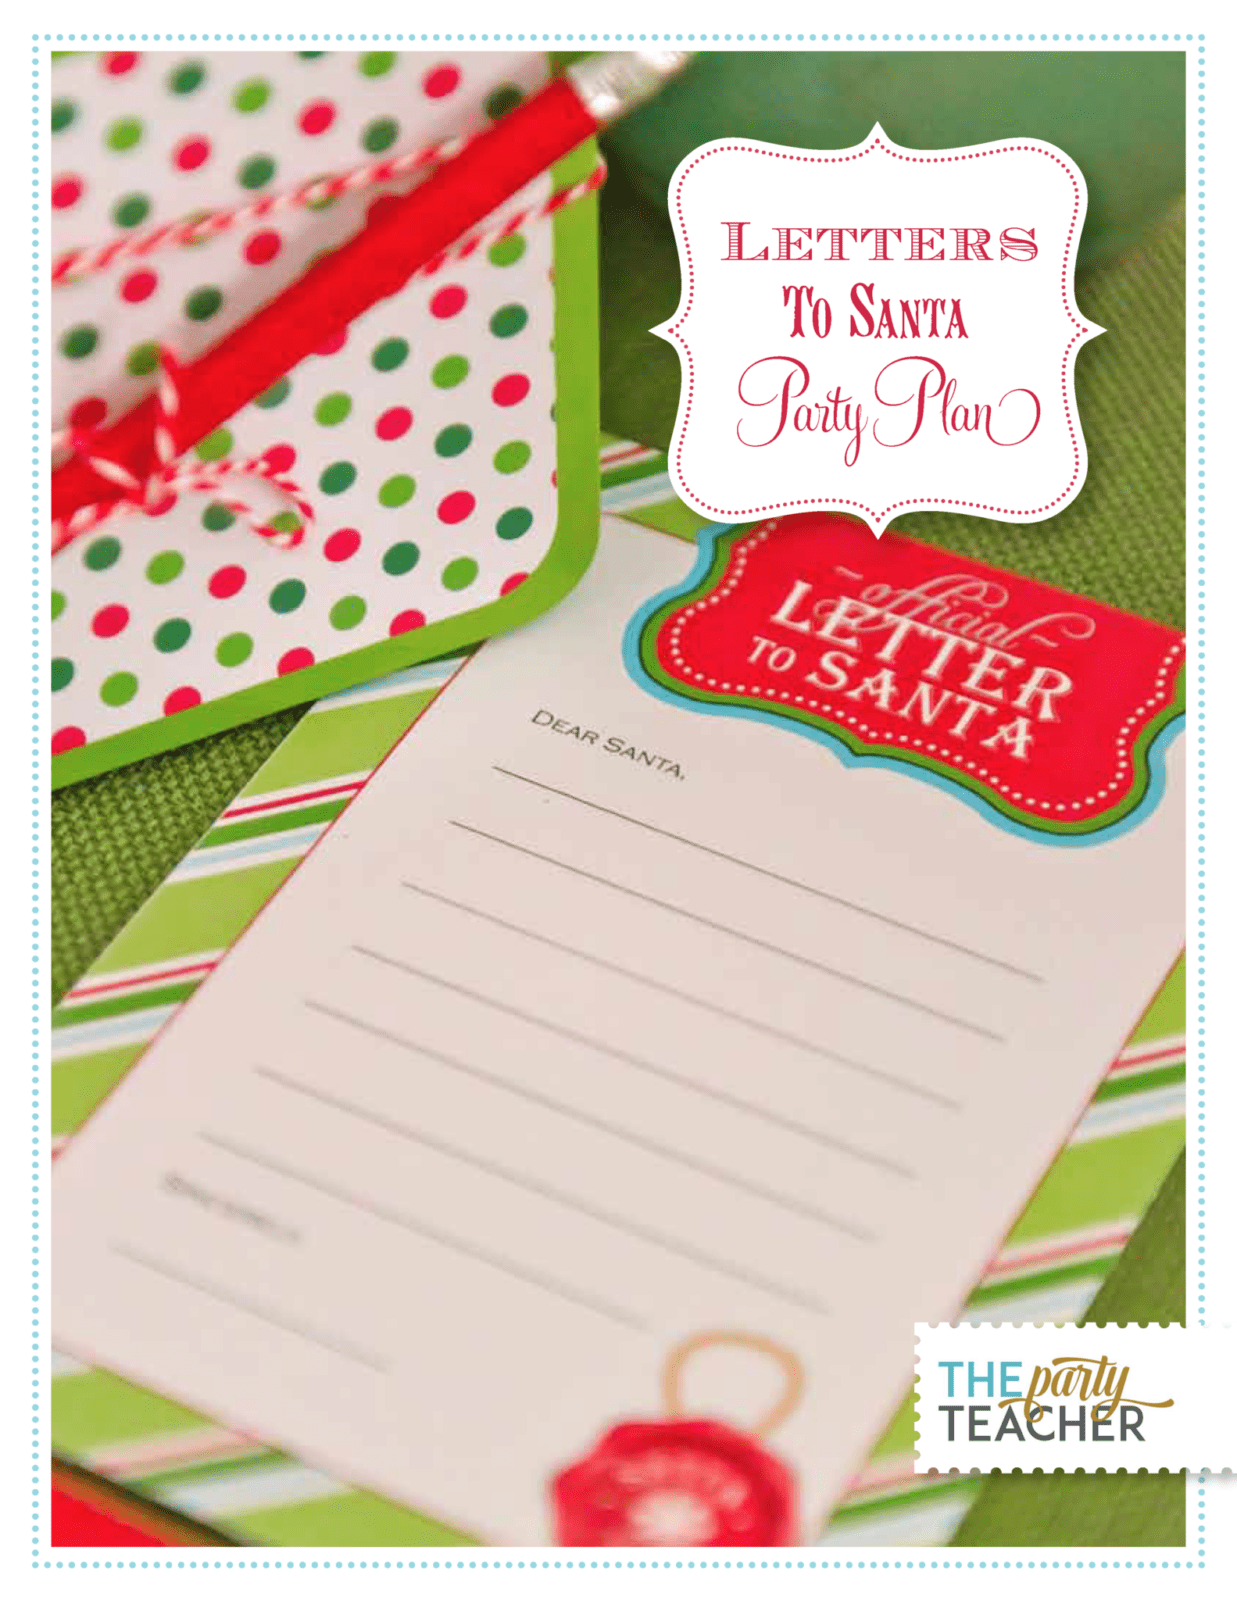 Letters to Santa Party Plan